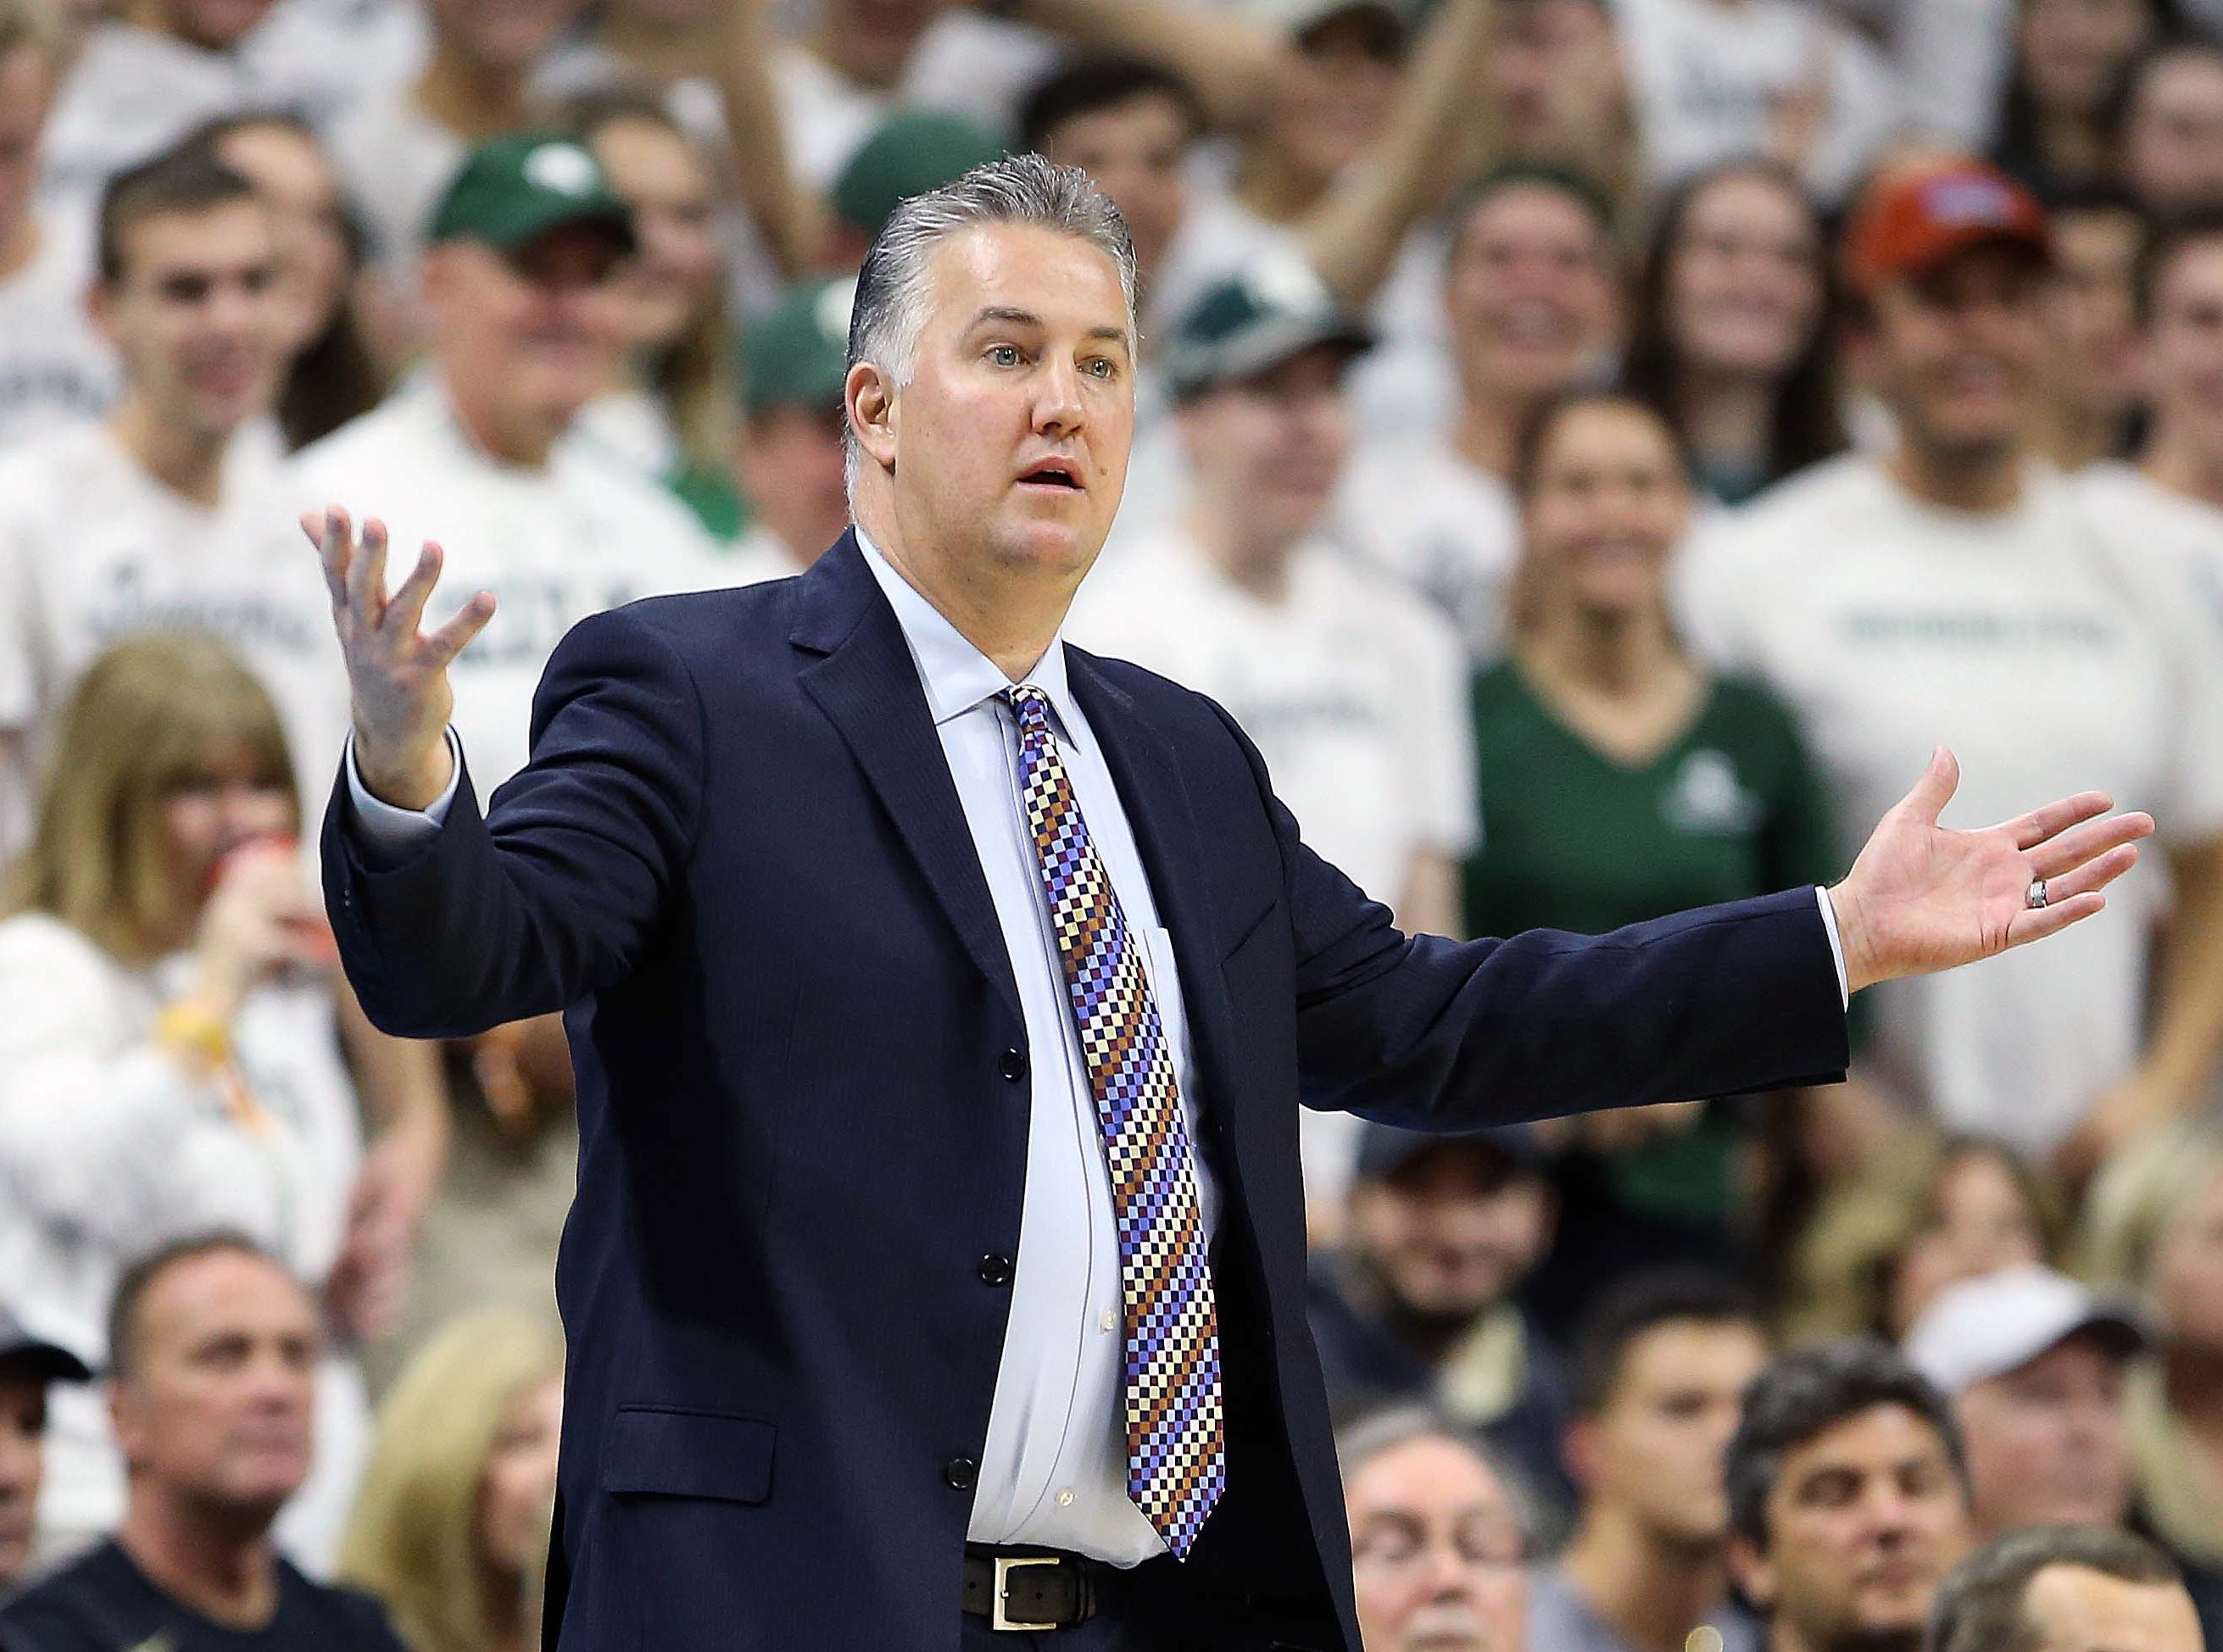 Jan 8, 2019; East Lansing, MI, USA; Purdue Boilermakers head coach Matt Painter reacts during the first half of a game against the Michigan State Spartans at the Breslin Center. Mandatory Credit: Mike Carter-USA TODAY Sports